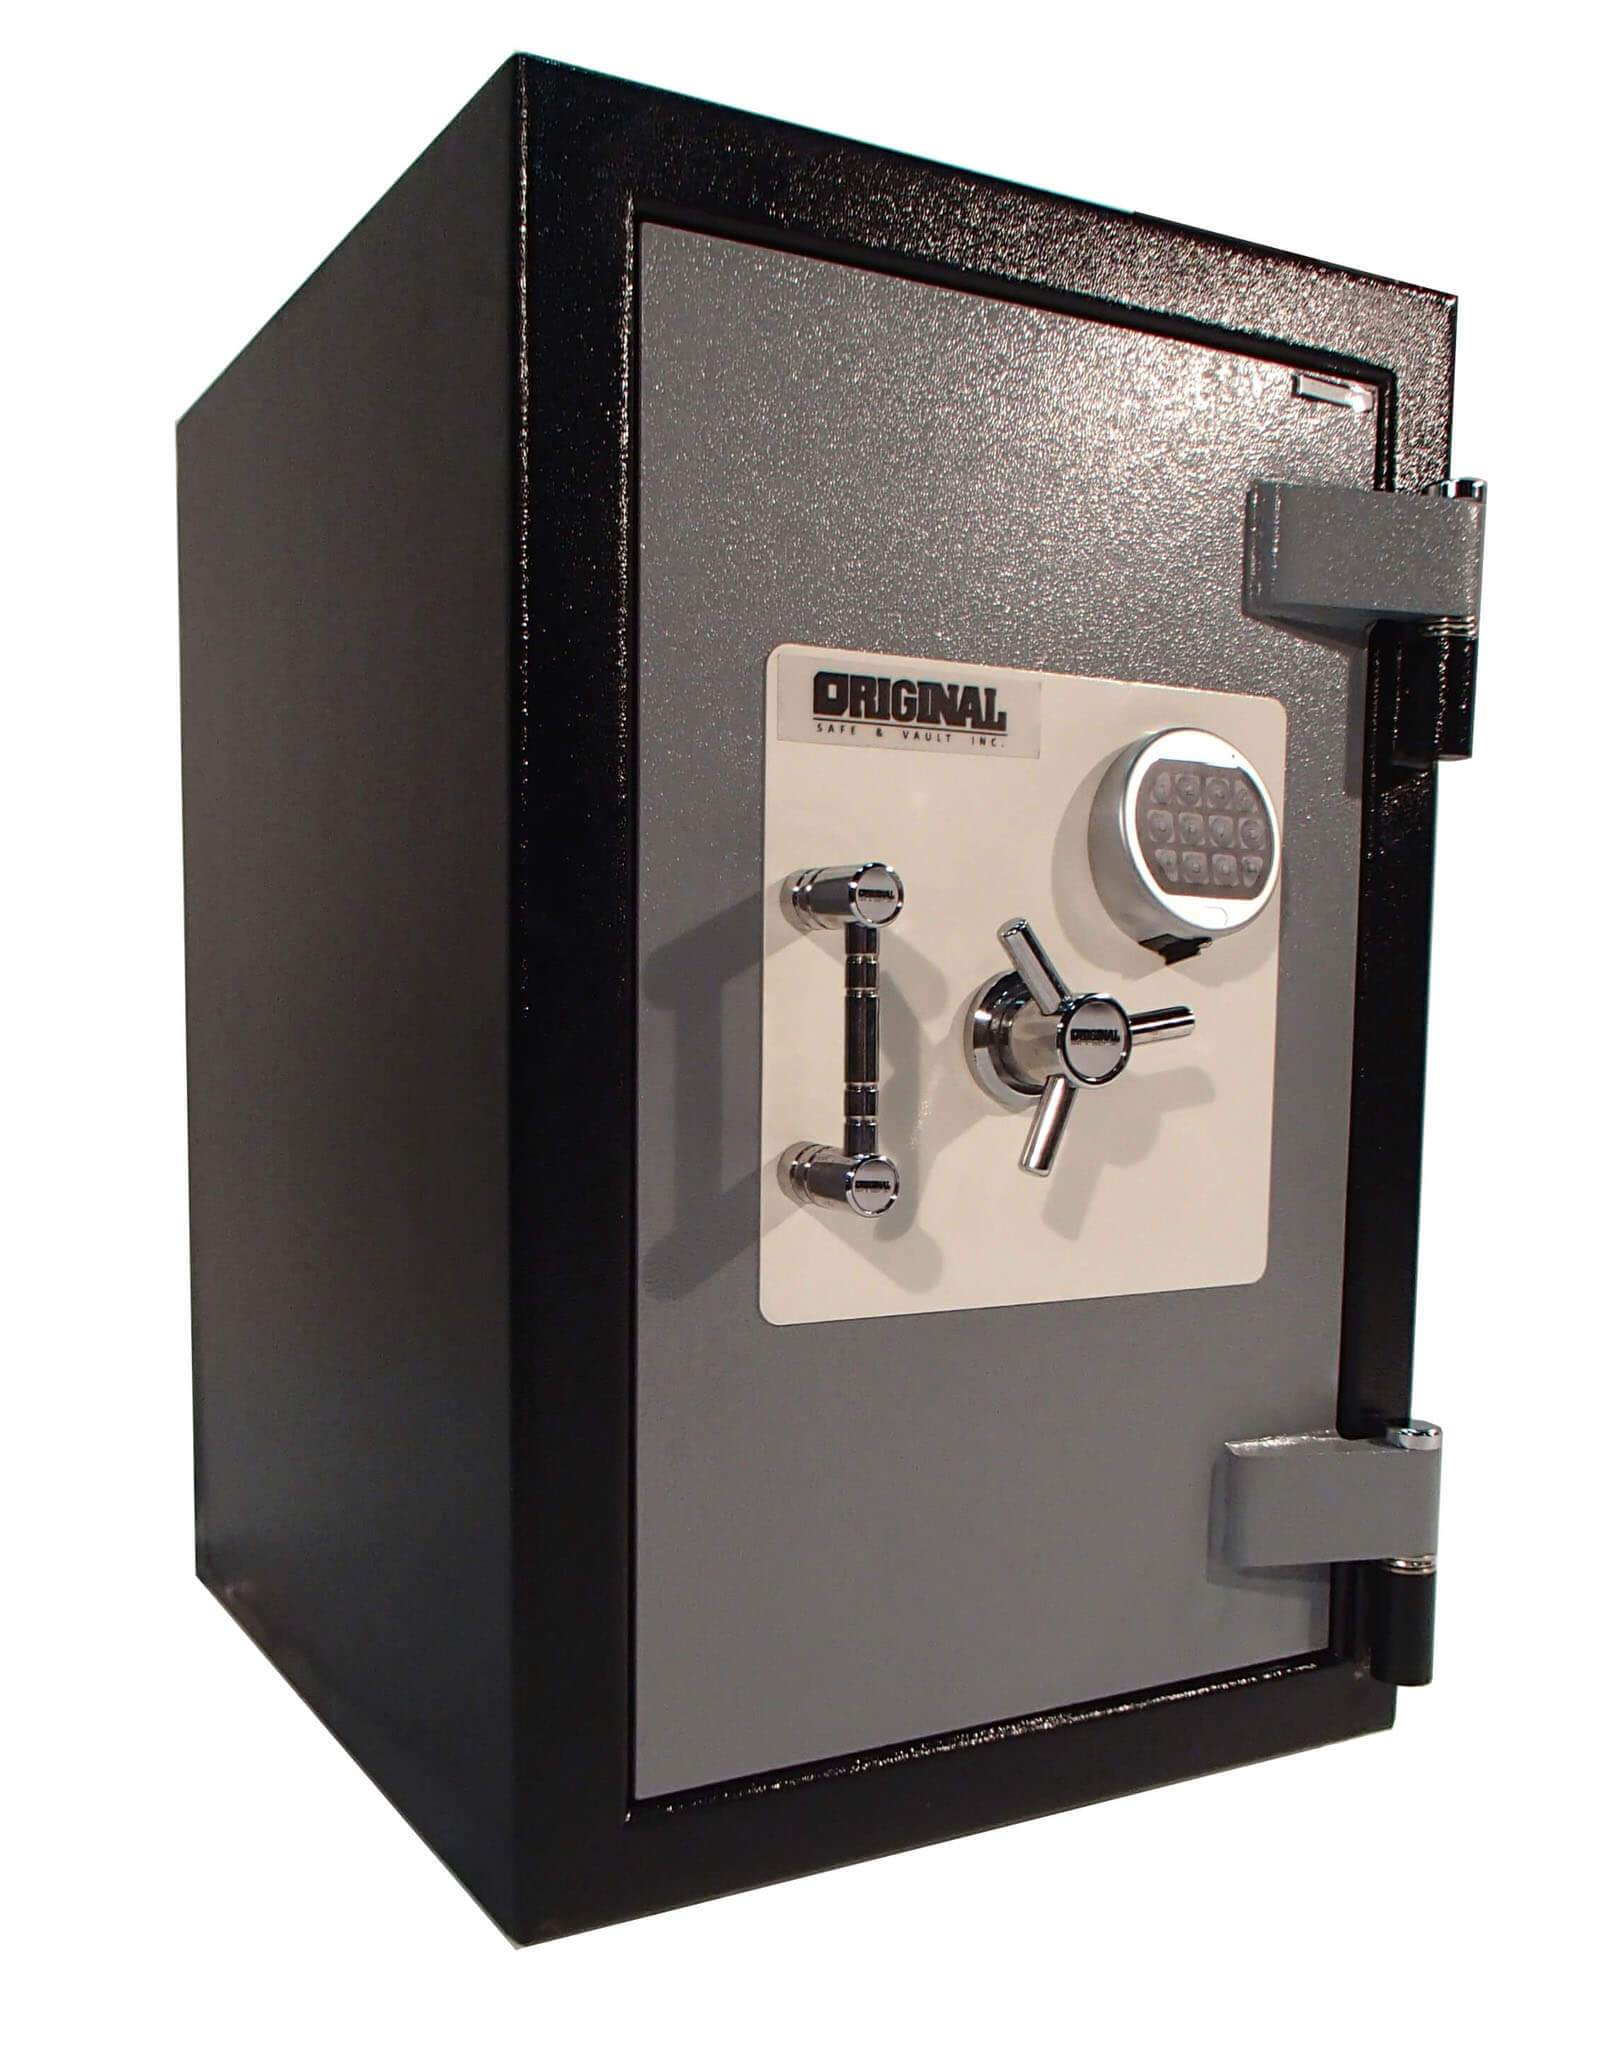 Burglar Fire Safe Products - Original Enforcer 3616 C-Rated Burglar & Fire Safe